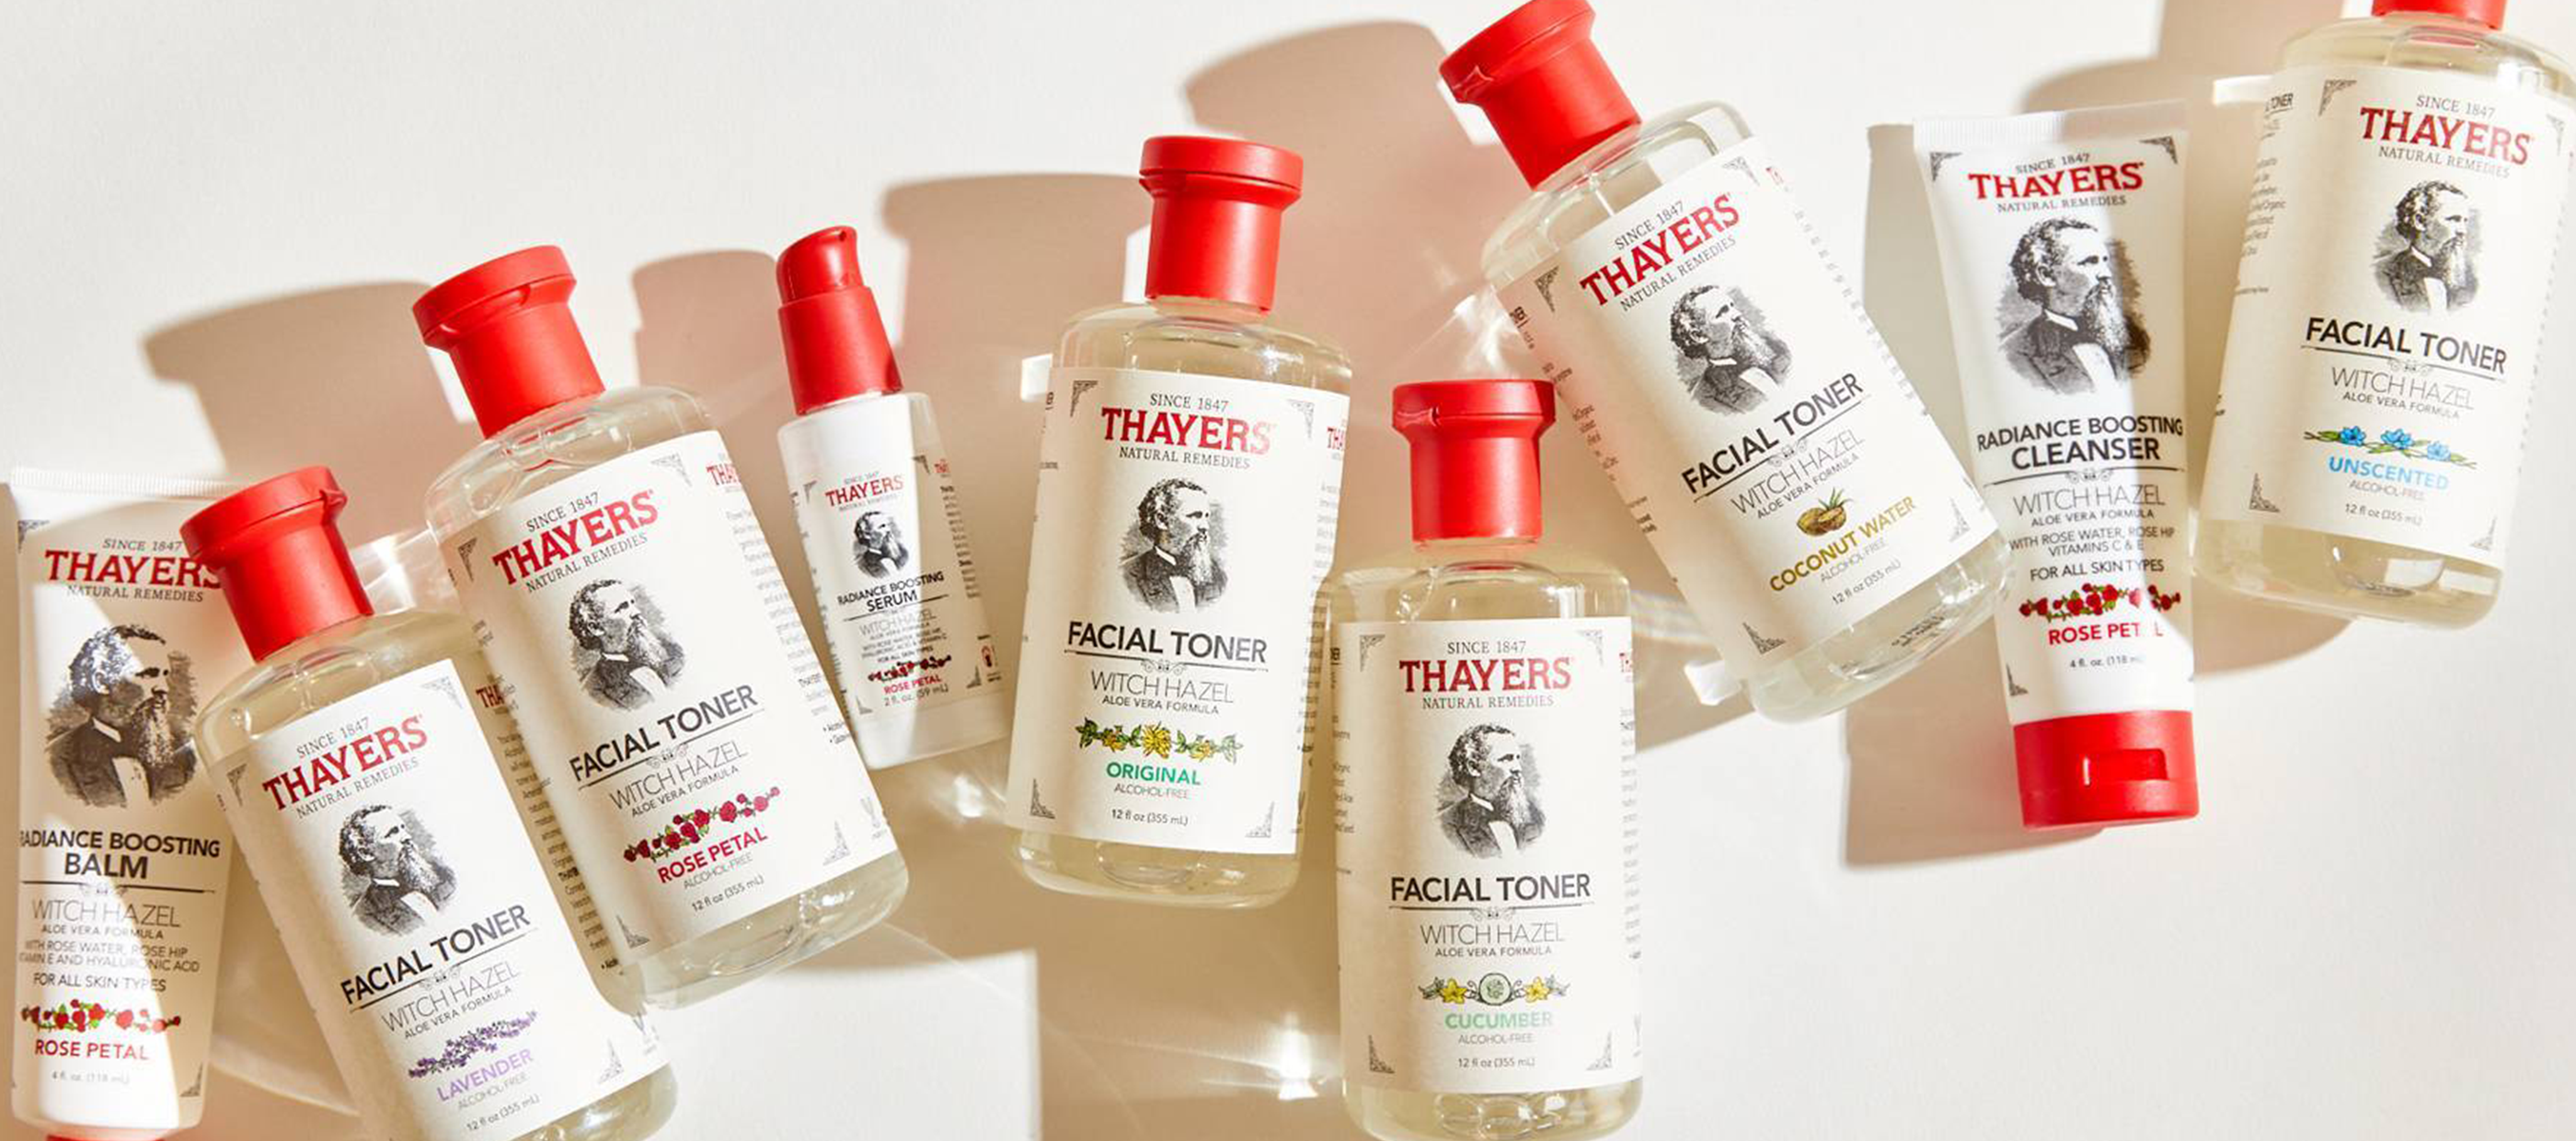 Thayers Natural Remedies Case Study